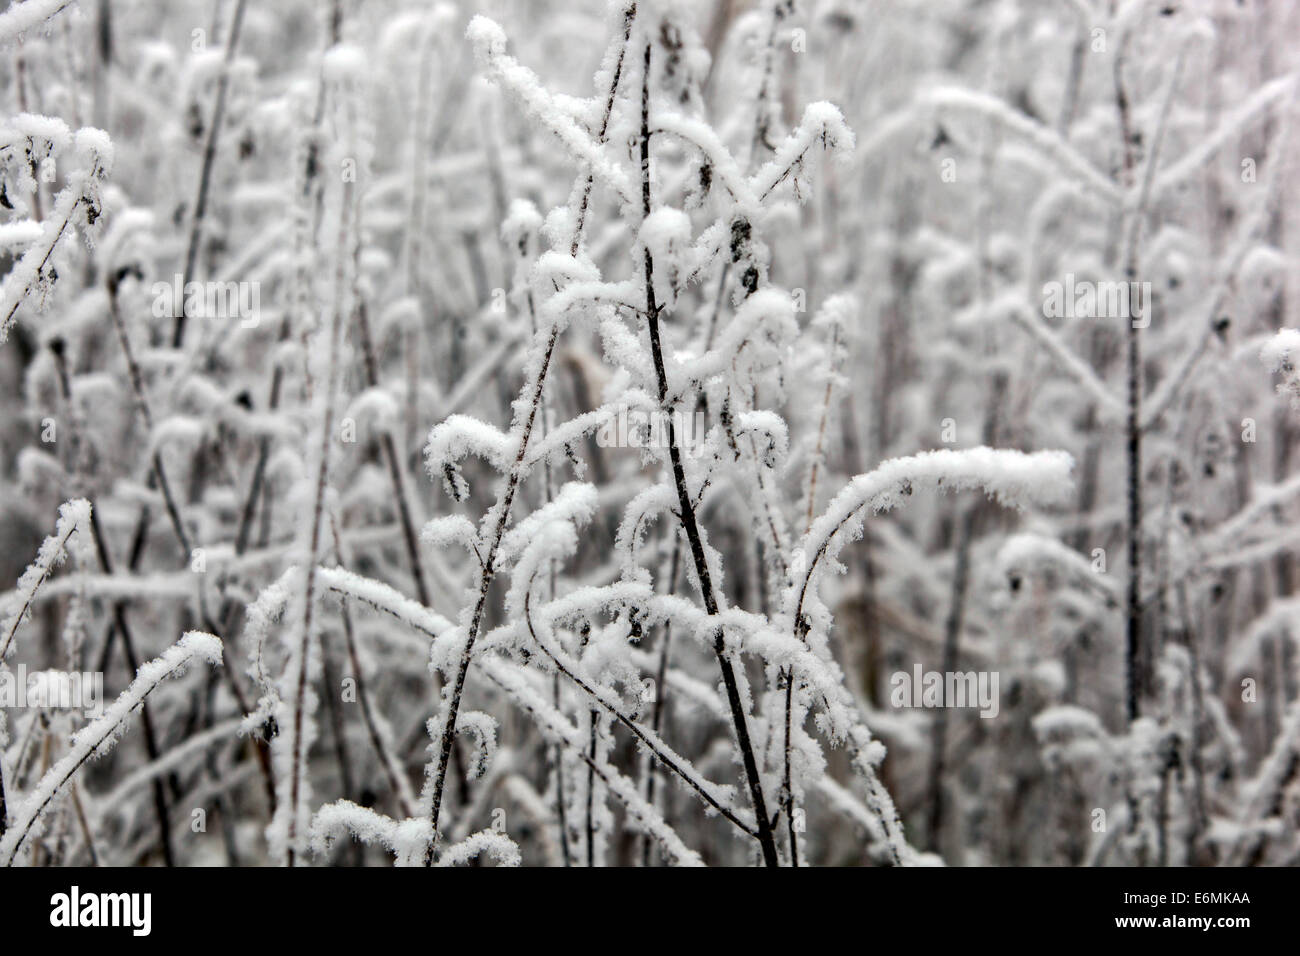 Early morning winter hoarfrost on plant - Stock Image